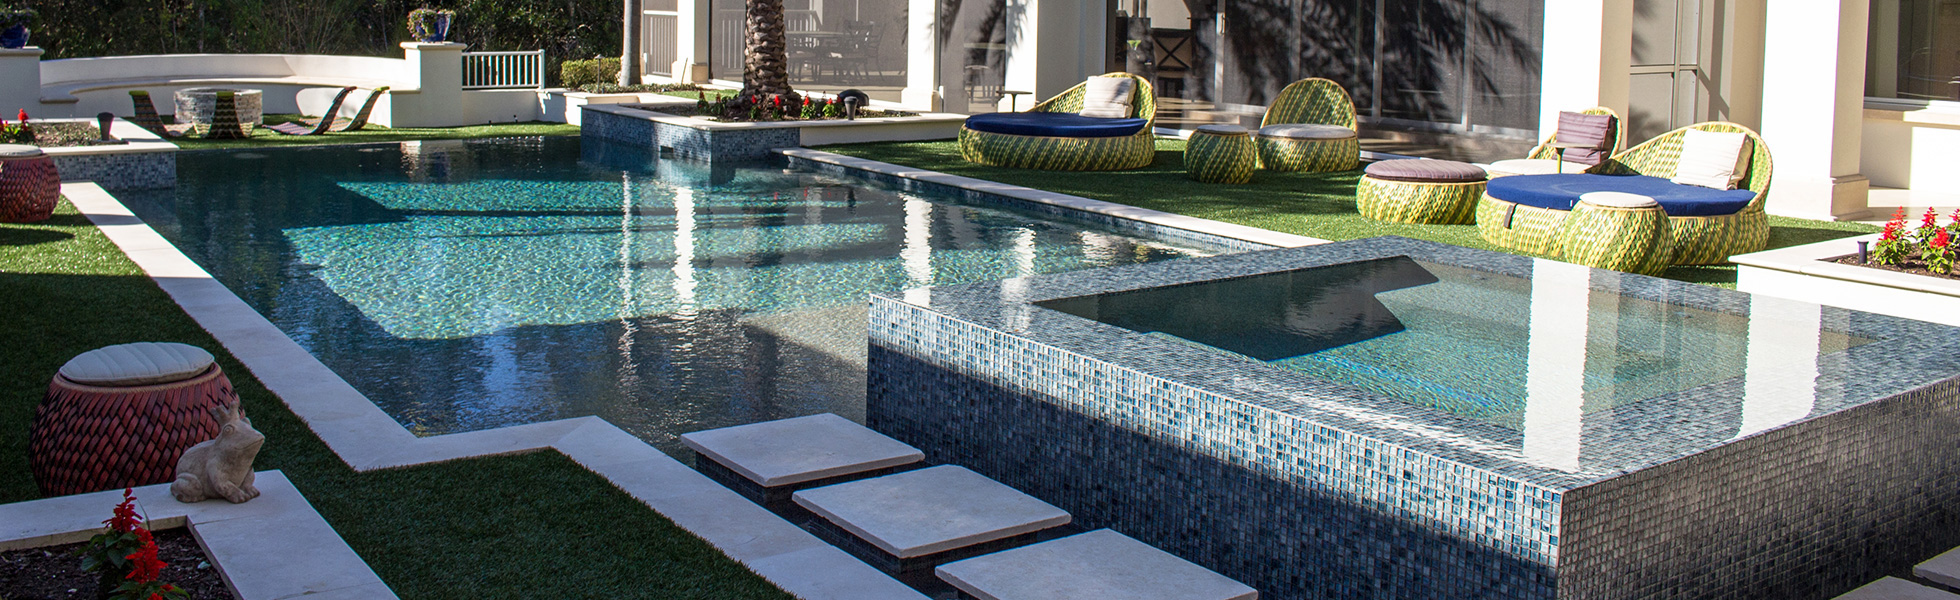 Luxury pool builder in orlando fl custom swimming pools for Pool design florida